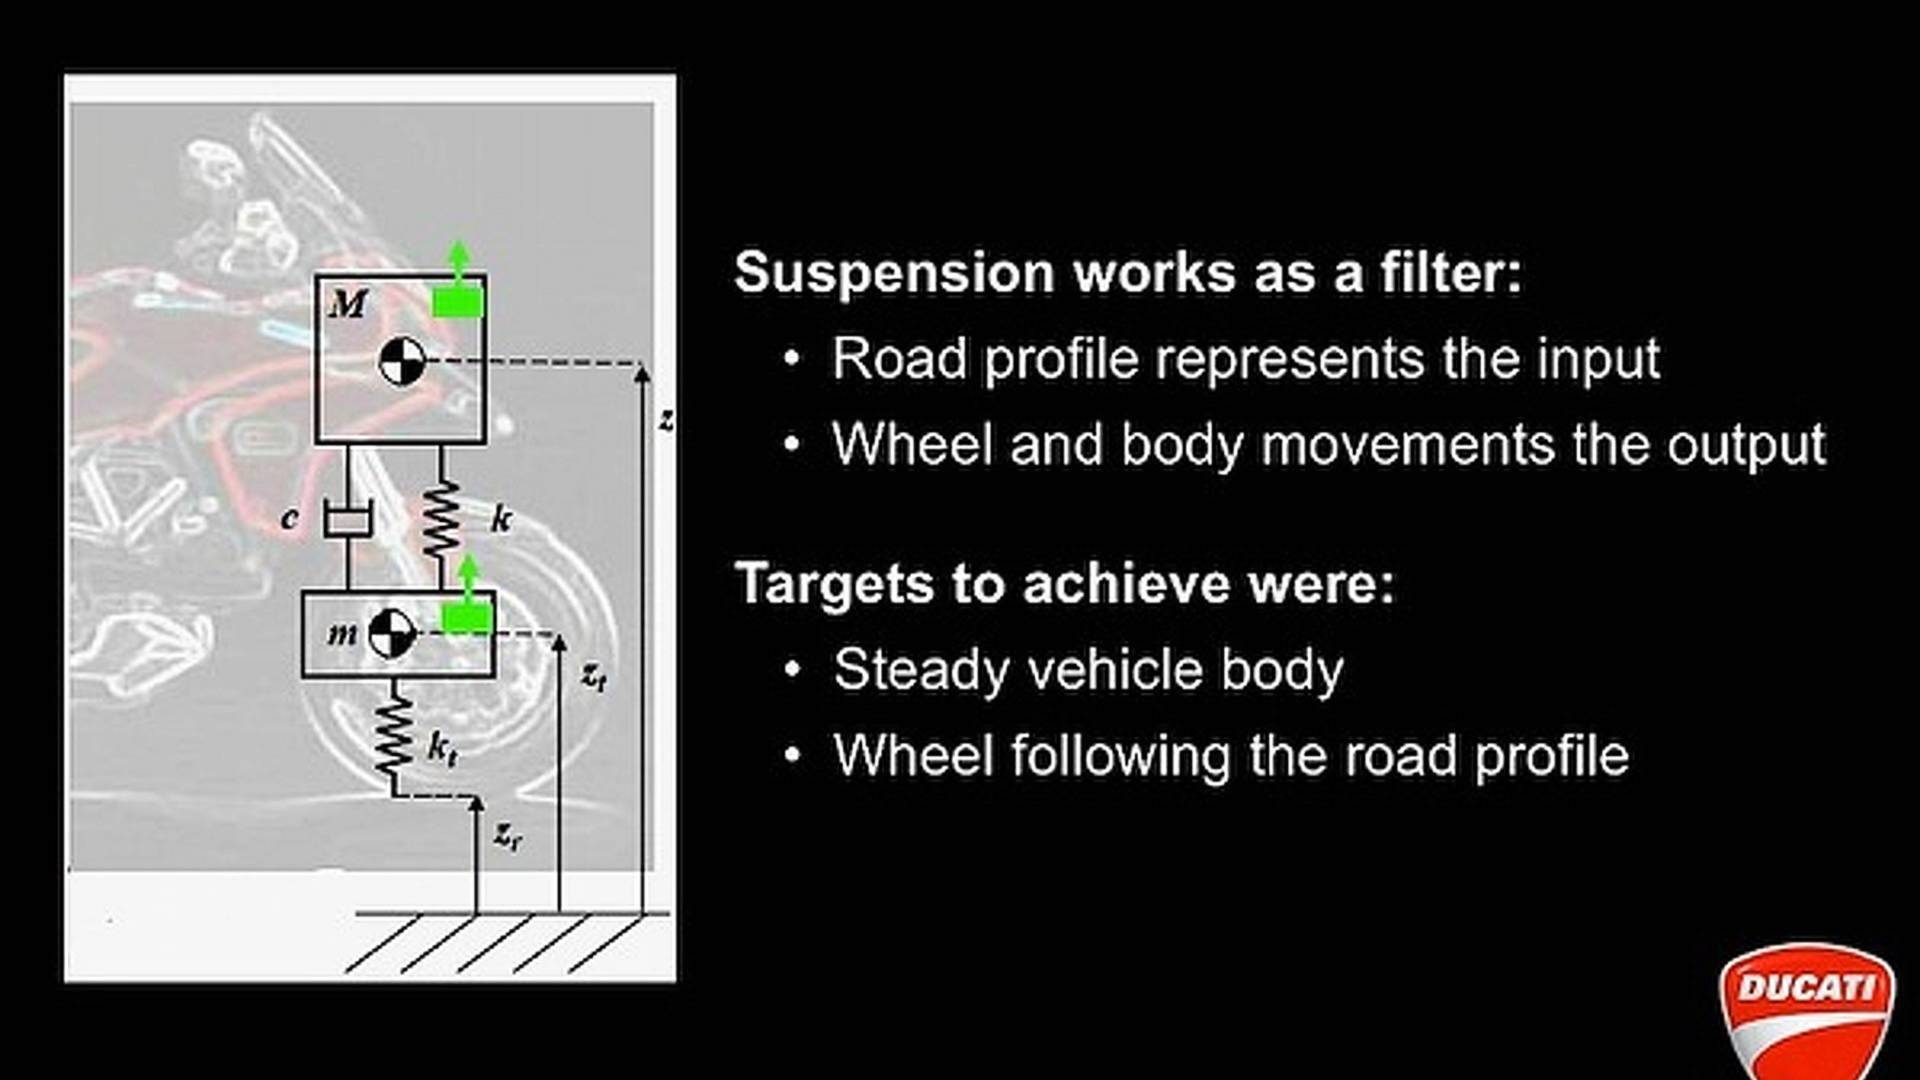 """A Ducati slide on how their Skyhook Active Suspension works. The Skyhook is the solenoid """"c"""" in the left middle, intermediary to the motorcycle """"M"""" and the road """"m"""" and the kinetic energy """"k"""" through the suspension."""